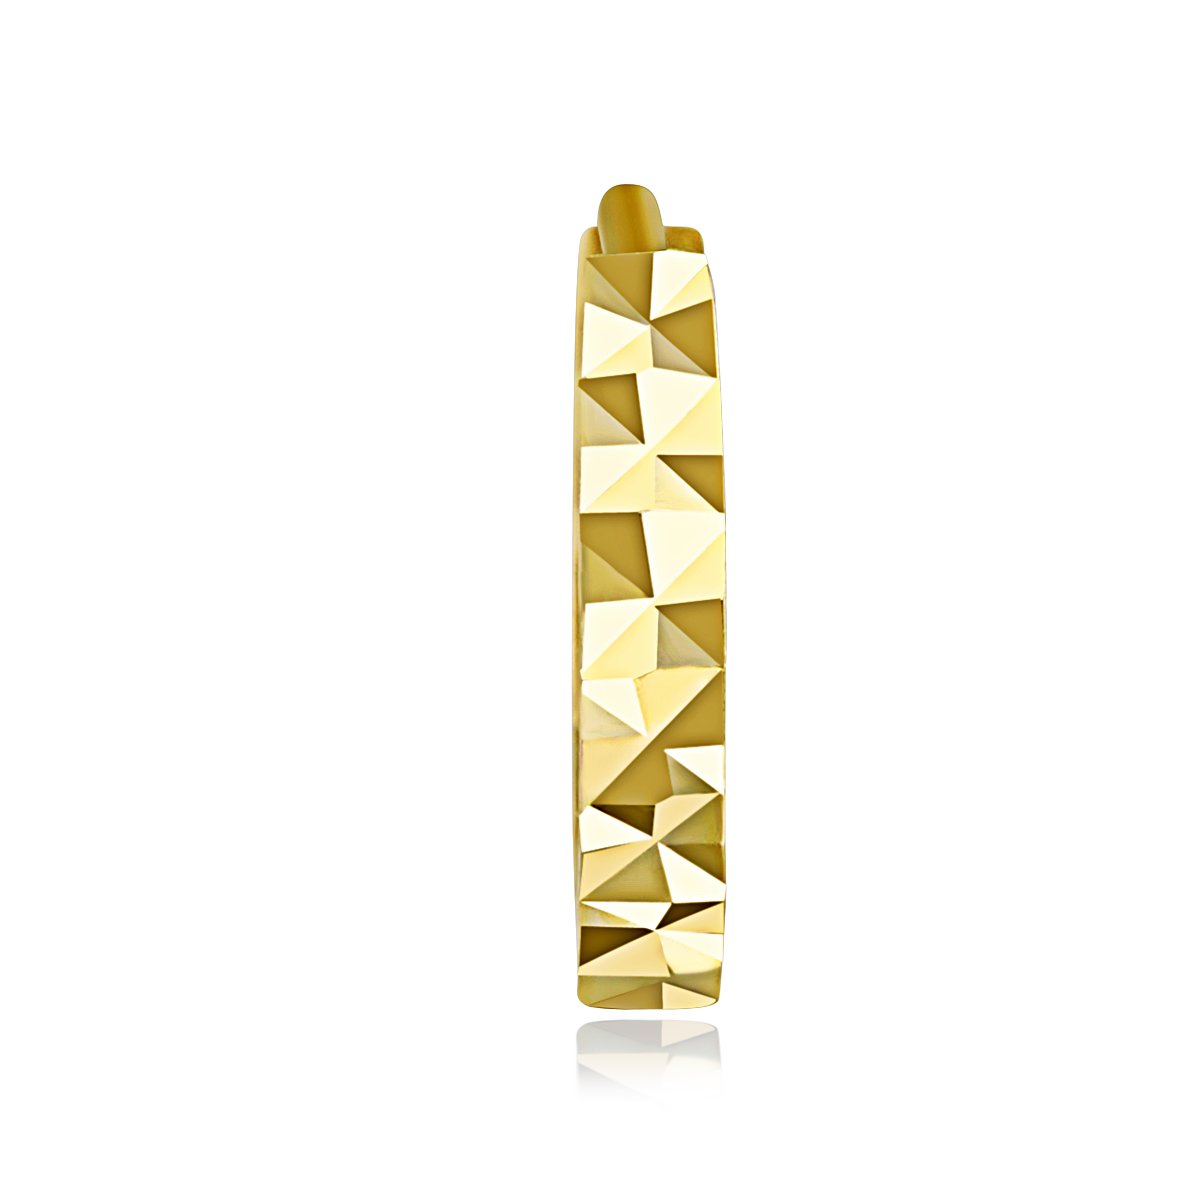 11 x 11 mm 14k Yellow OR White Gold 2mm Thickness Multifaceted Huggie Earrings